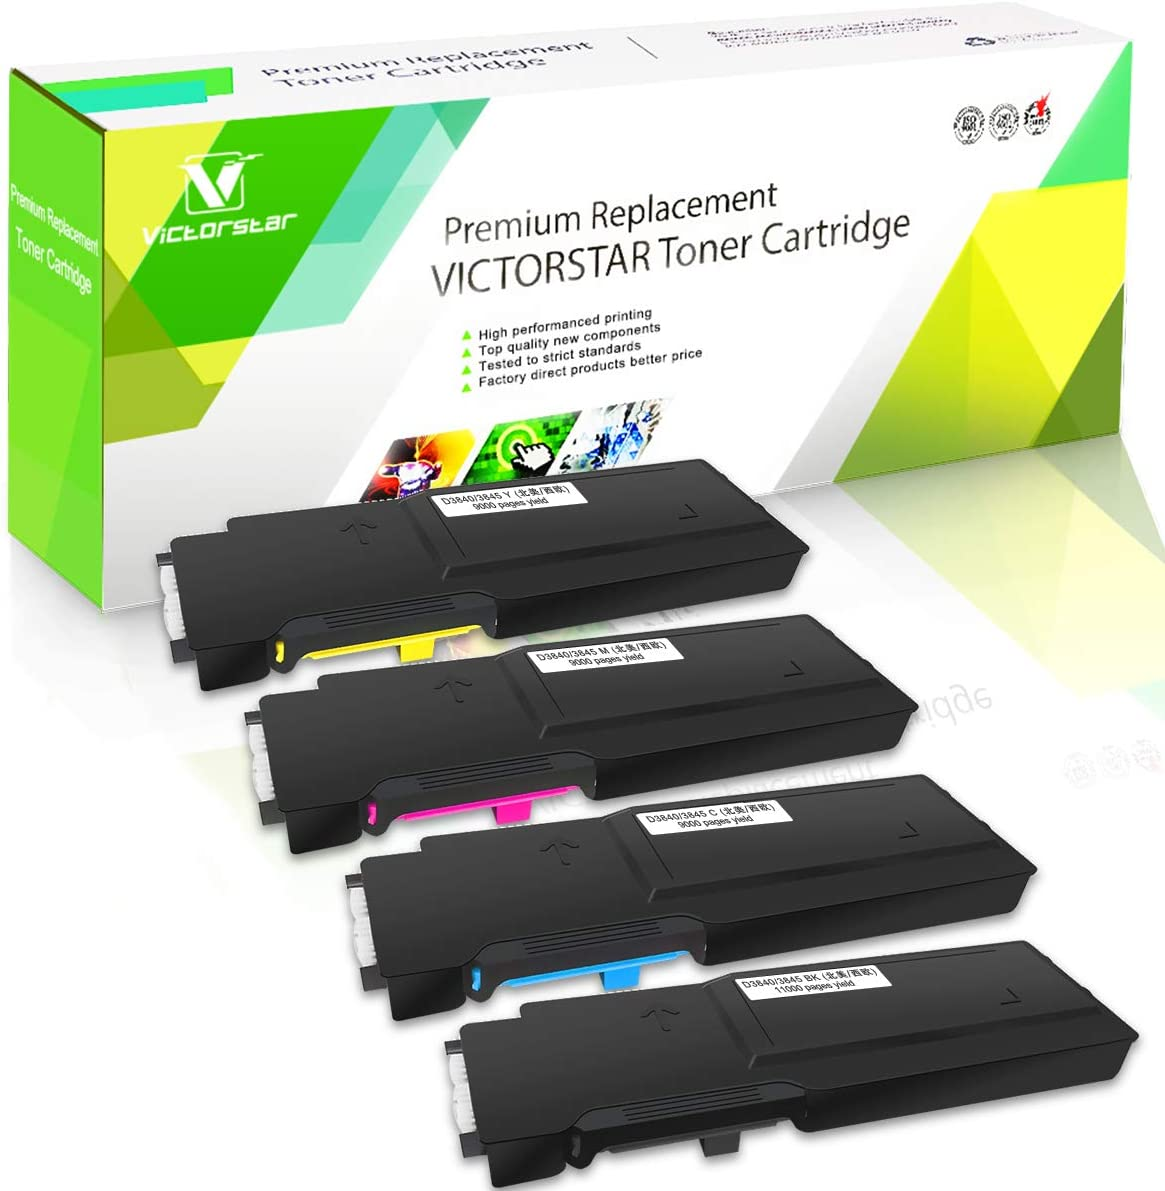 4 Color Compatible Toner Cartridges S3840 S3845 Extra High Yield 11000 Pages for Black 9000 Pages for C M Y for DELL S3840cdn S3845cdn Printers VICTORSTAR